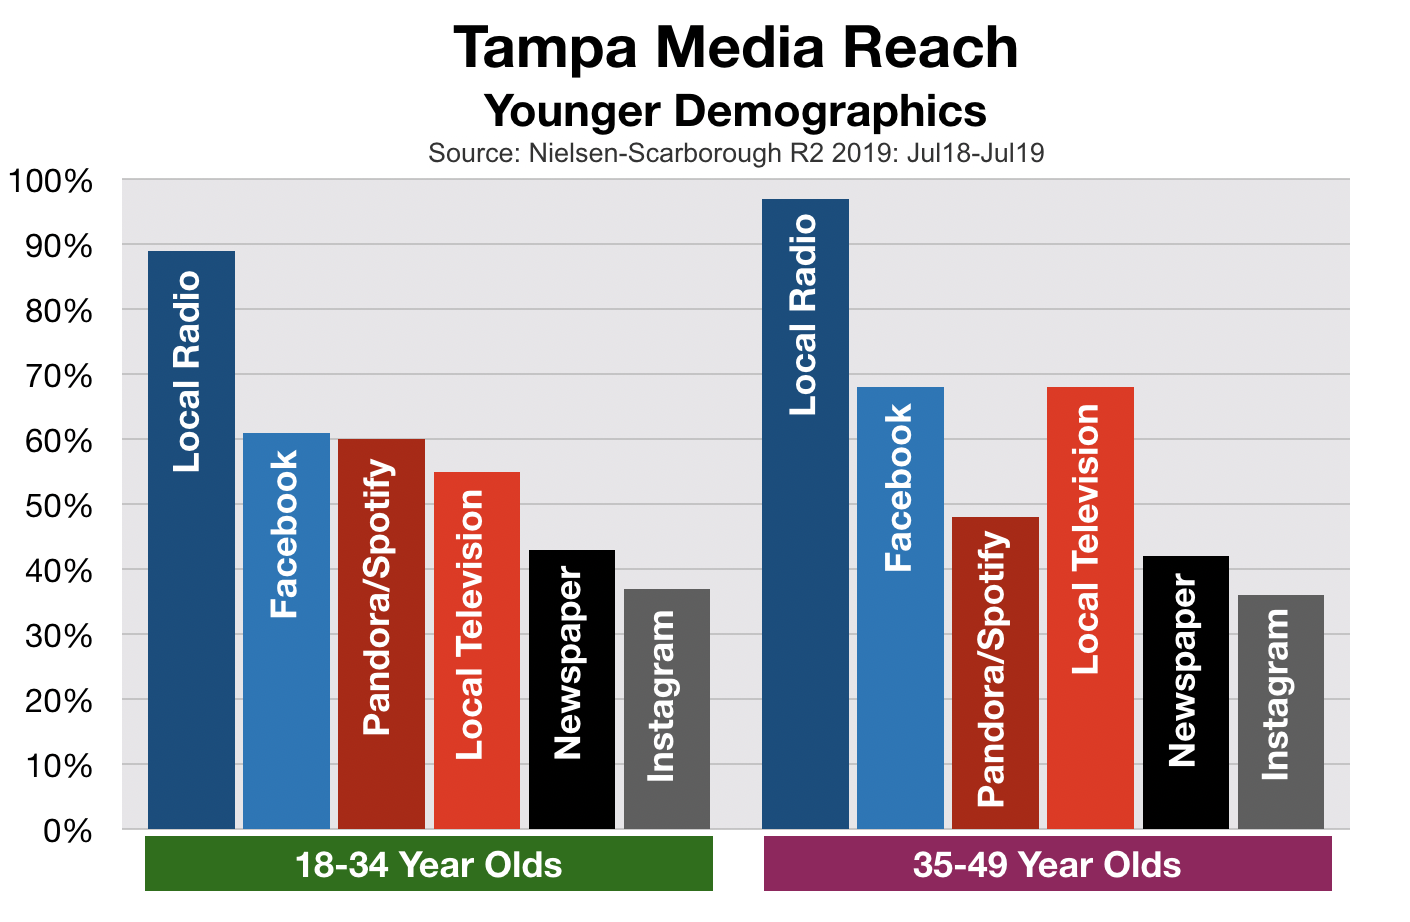 Advertising In Tampa Younger Demographics